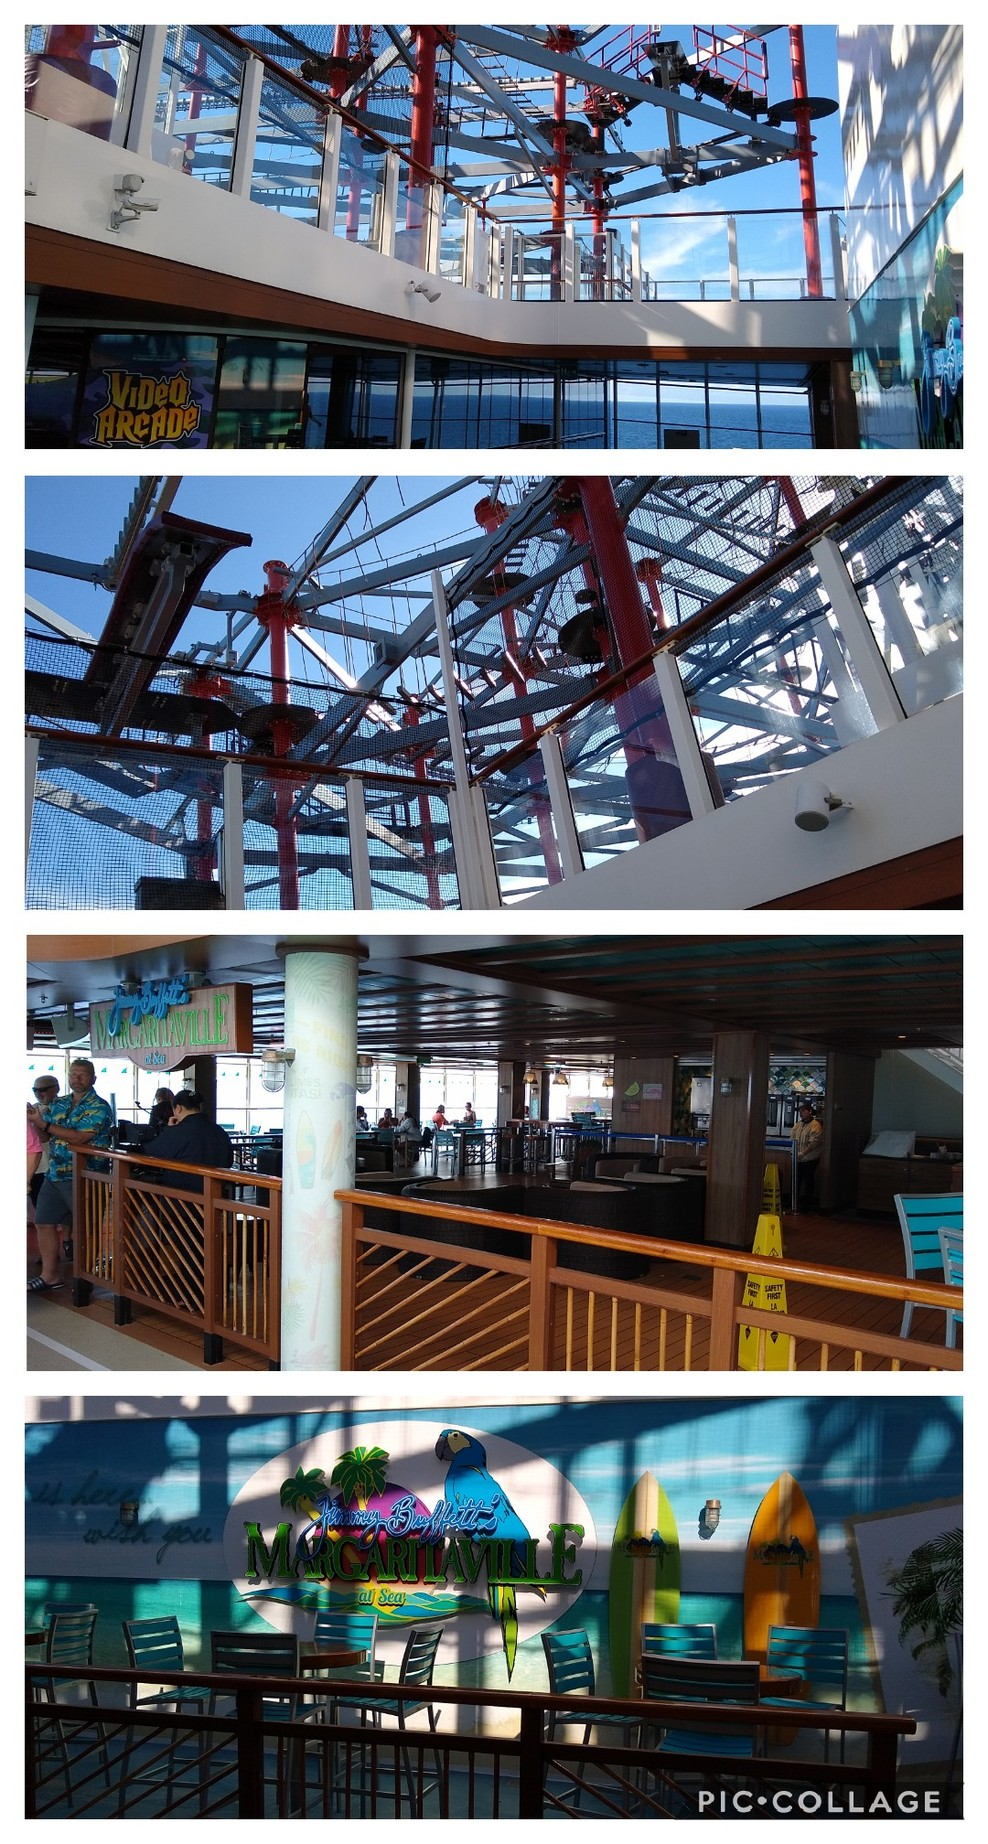 Margaritaville & the Rope Course area, deck 17 and 18 as seen from here